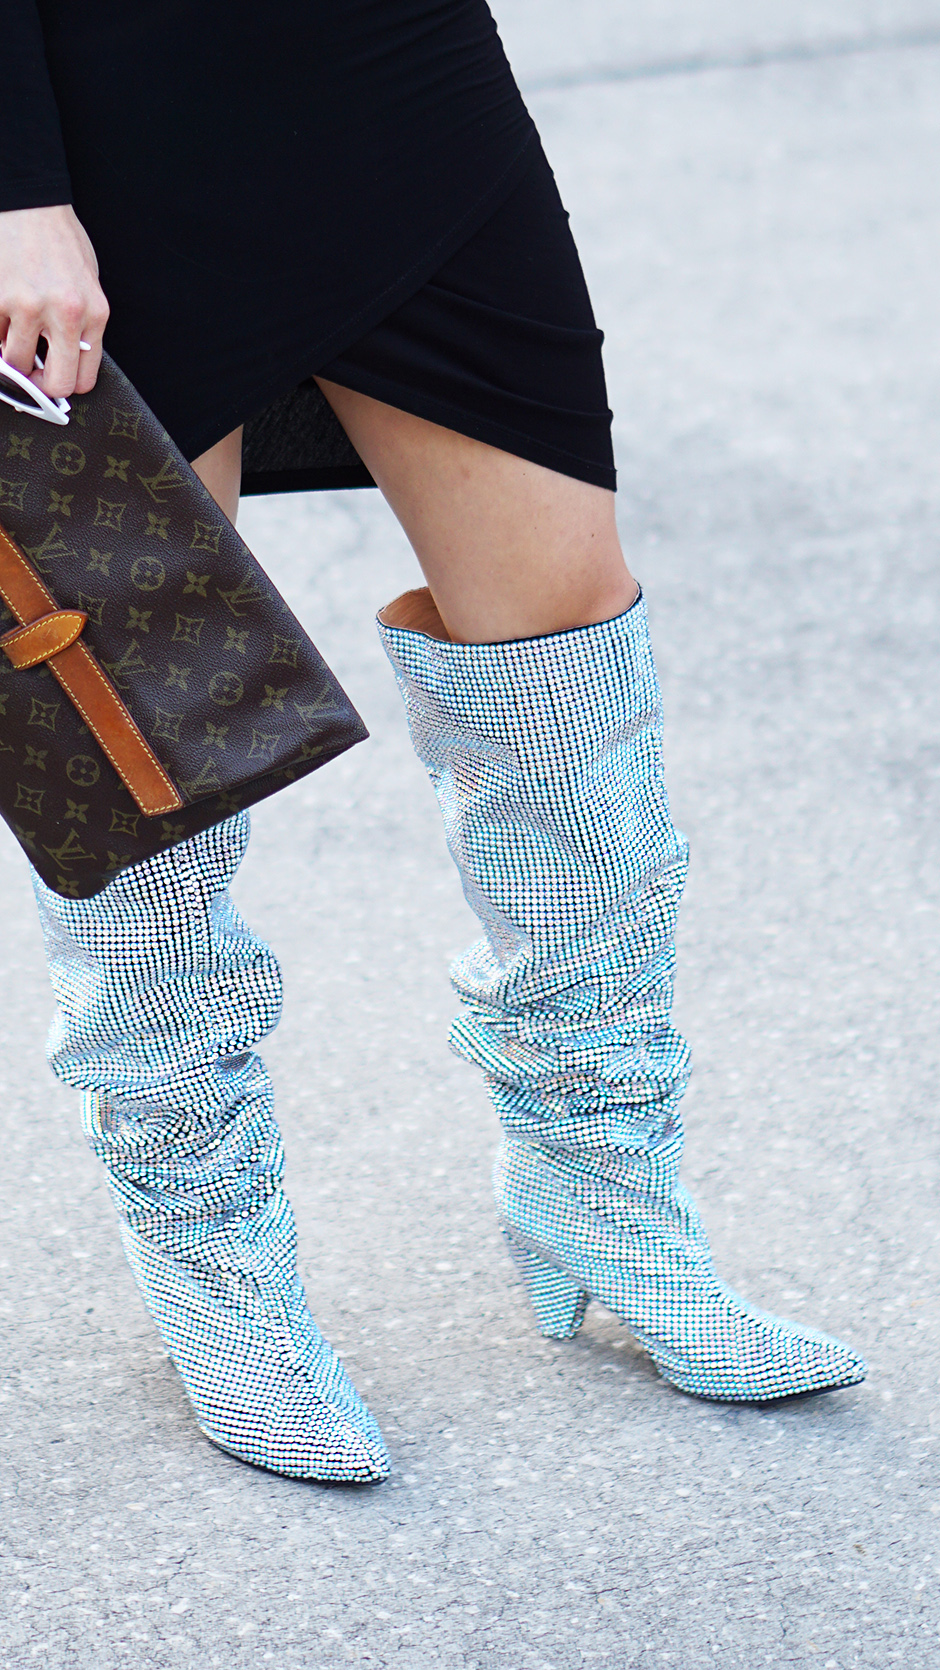 Rhinestone Glitter Boot Trend #streetstyle #ysl #saintlaurentboots #chanel #rhinestone #streetstyleinspiration #outfitinspiration #springsummertrends #summertrends #slouchboots #outfitinspiraiton #styleinspiration #dupes #runwaystyle #louisvuittonclutch #fashioninspiration #styledetails #shopthelook #outfits